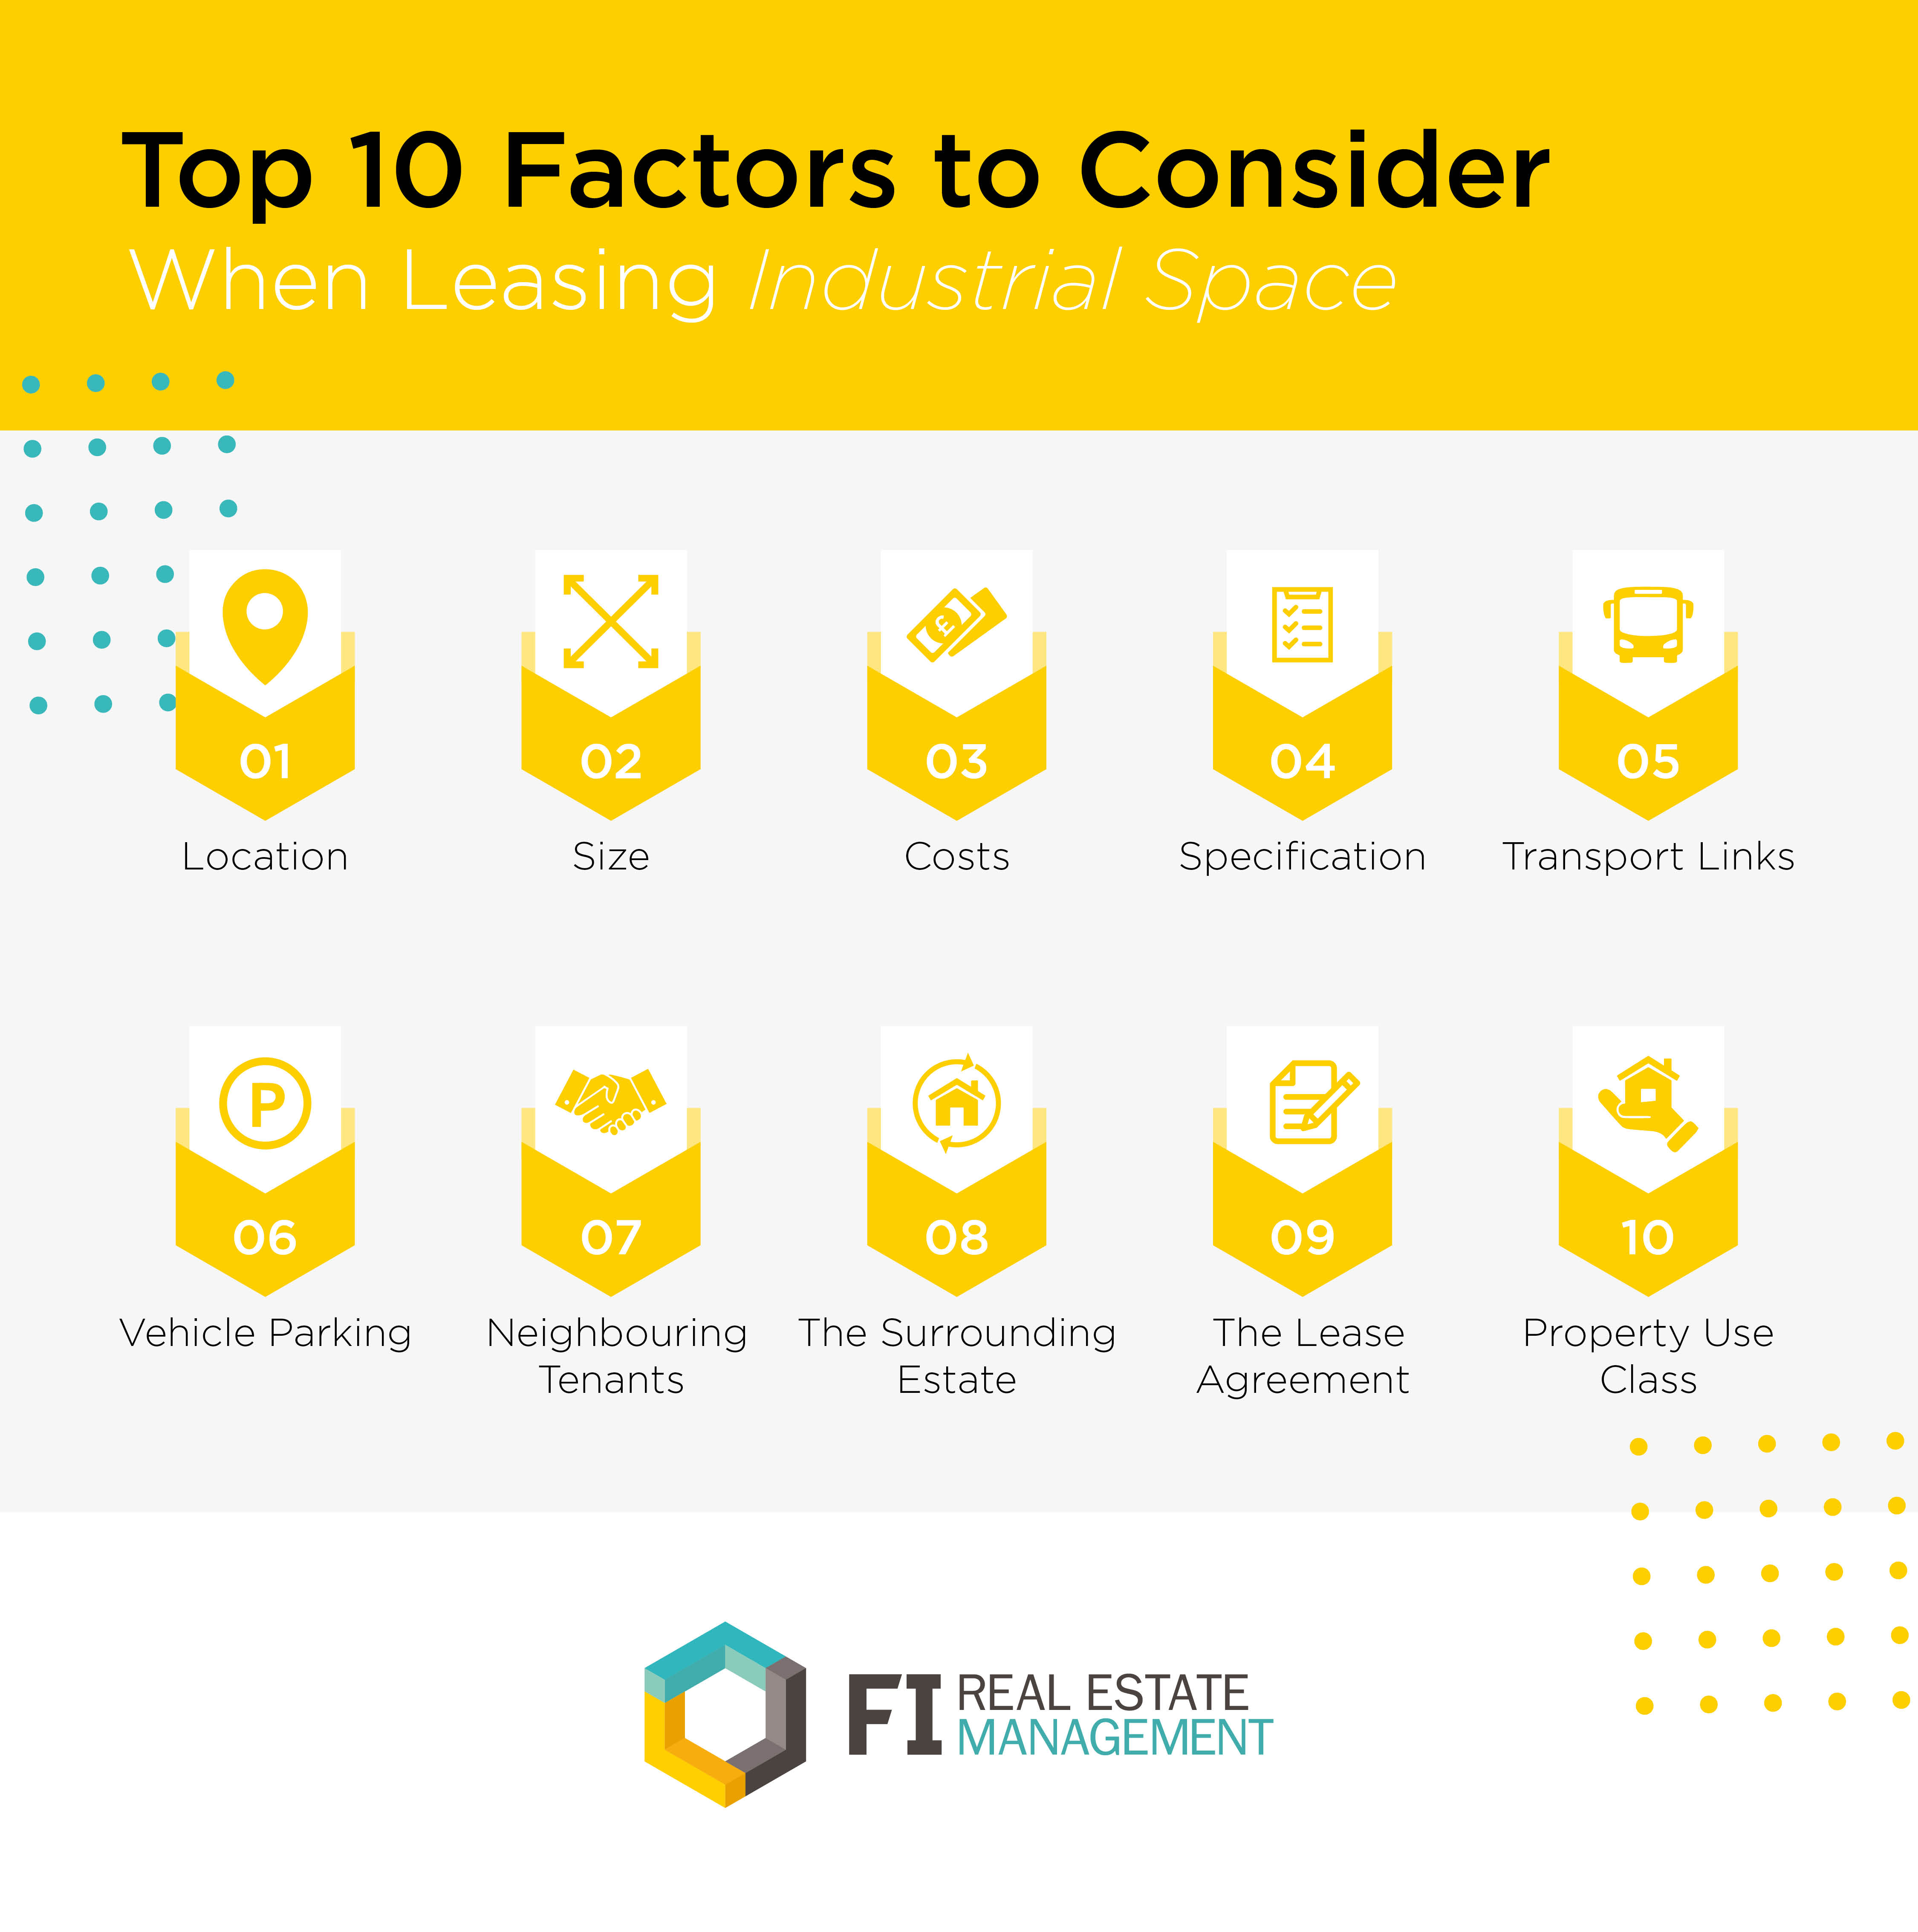 Top 10 Factors to Consider When Leasing Industrial Space